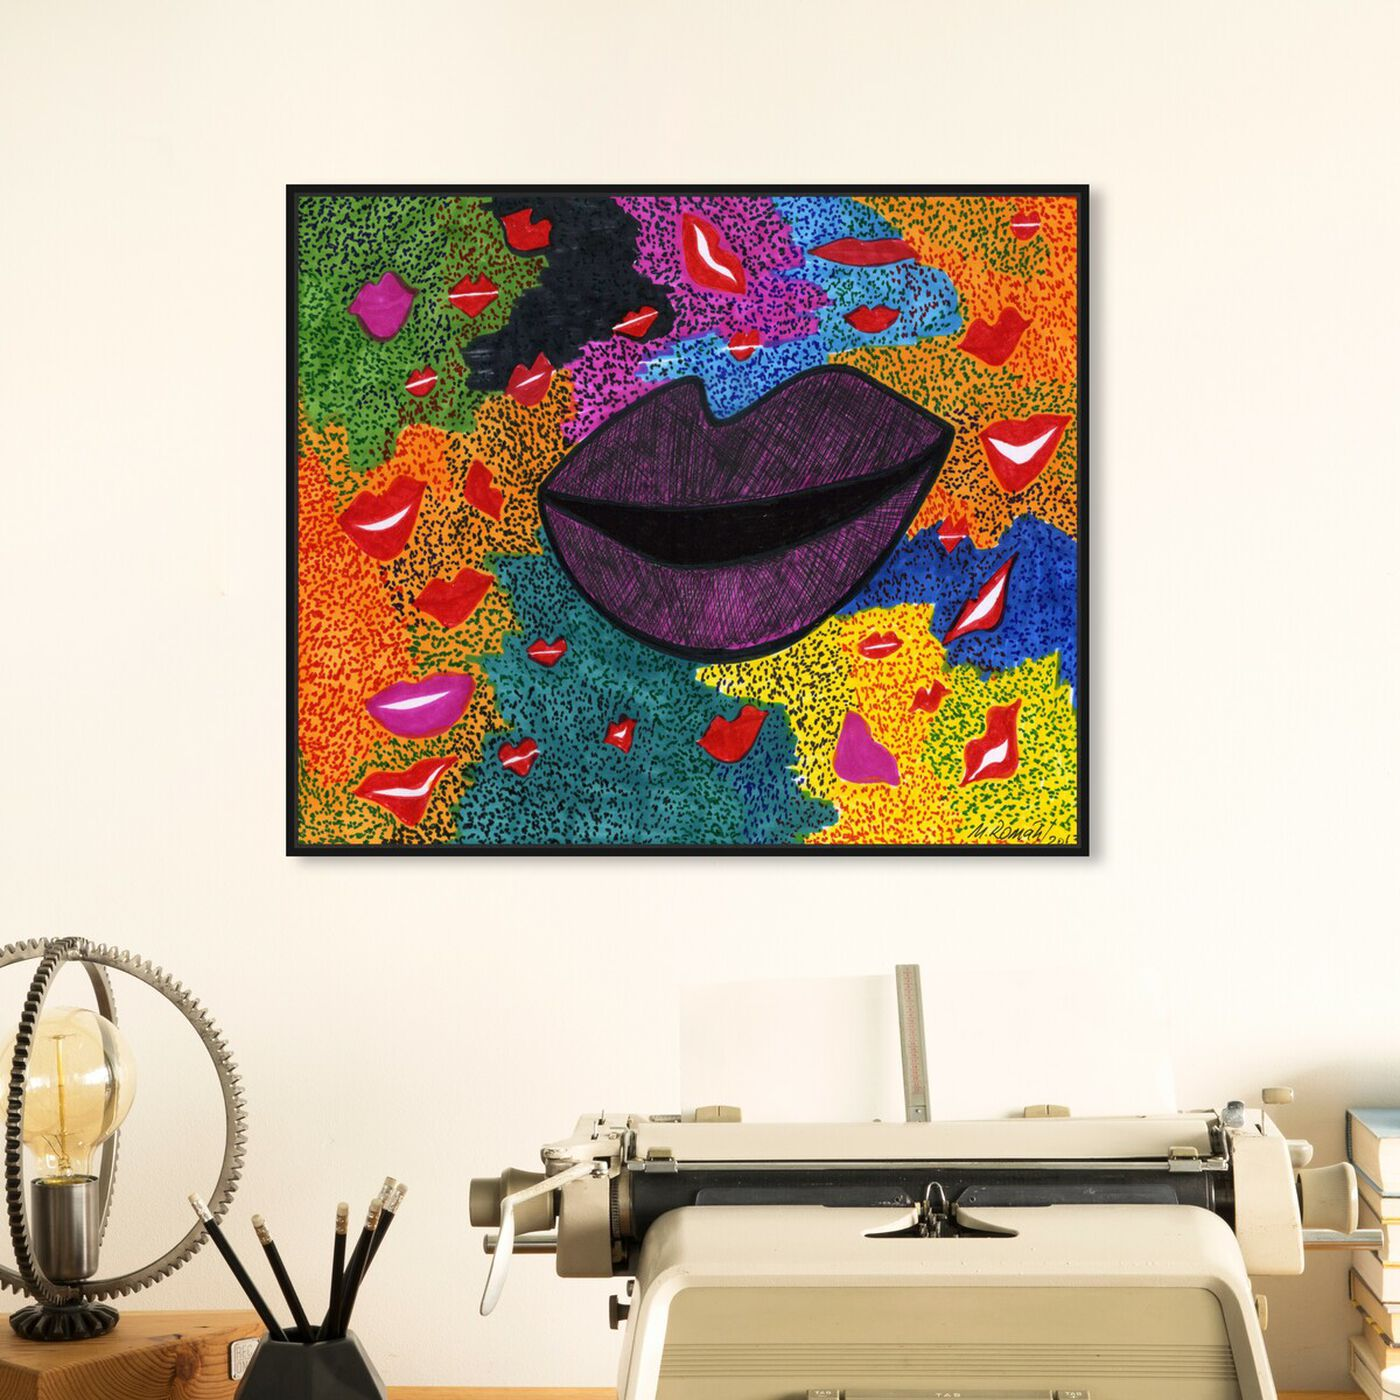 Hanging view of Laughter featuring fashion and glam and lips art.